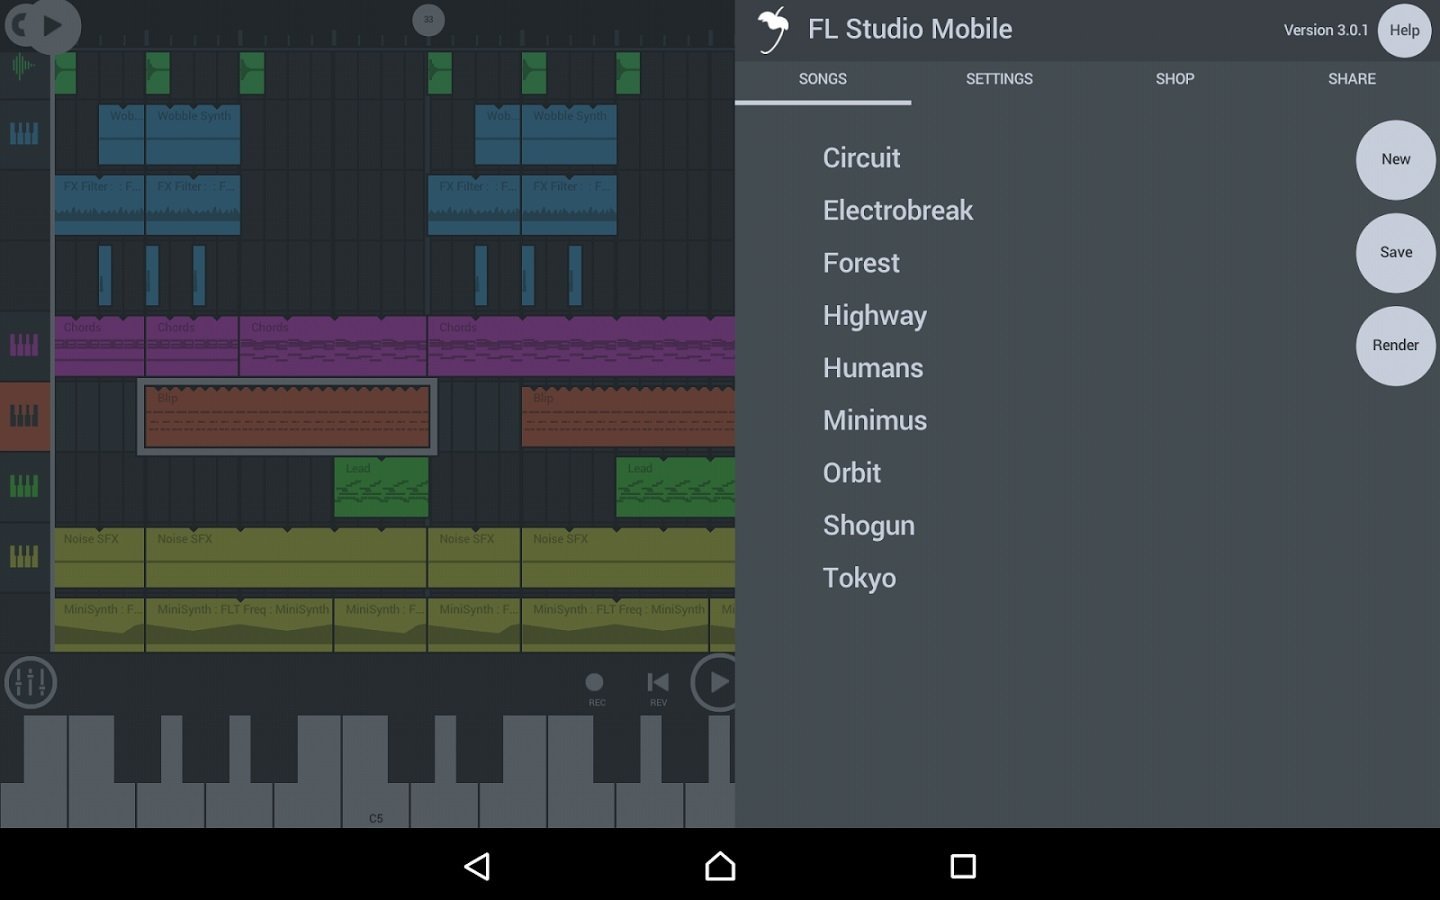 FL Studio Mobile Android image 8